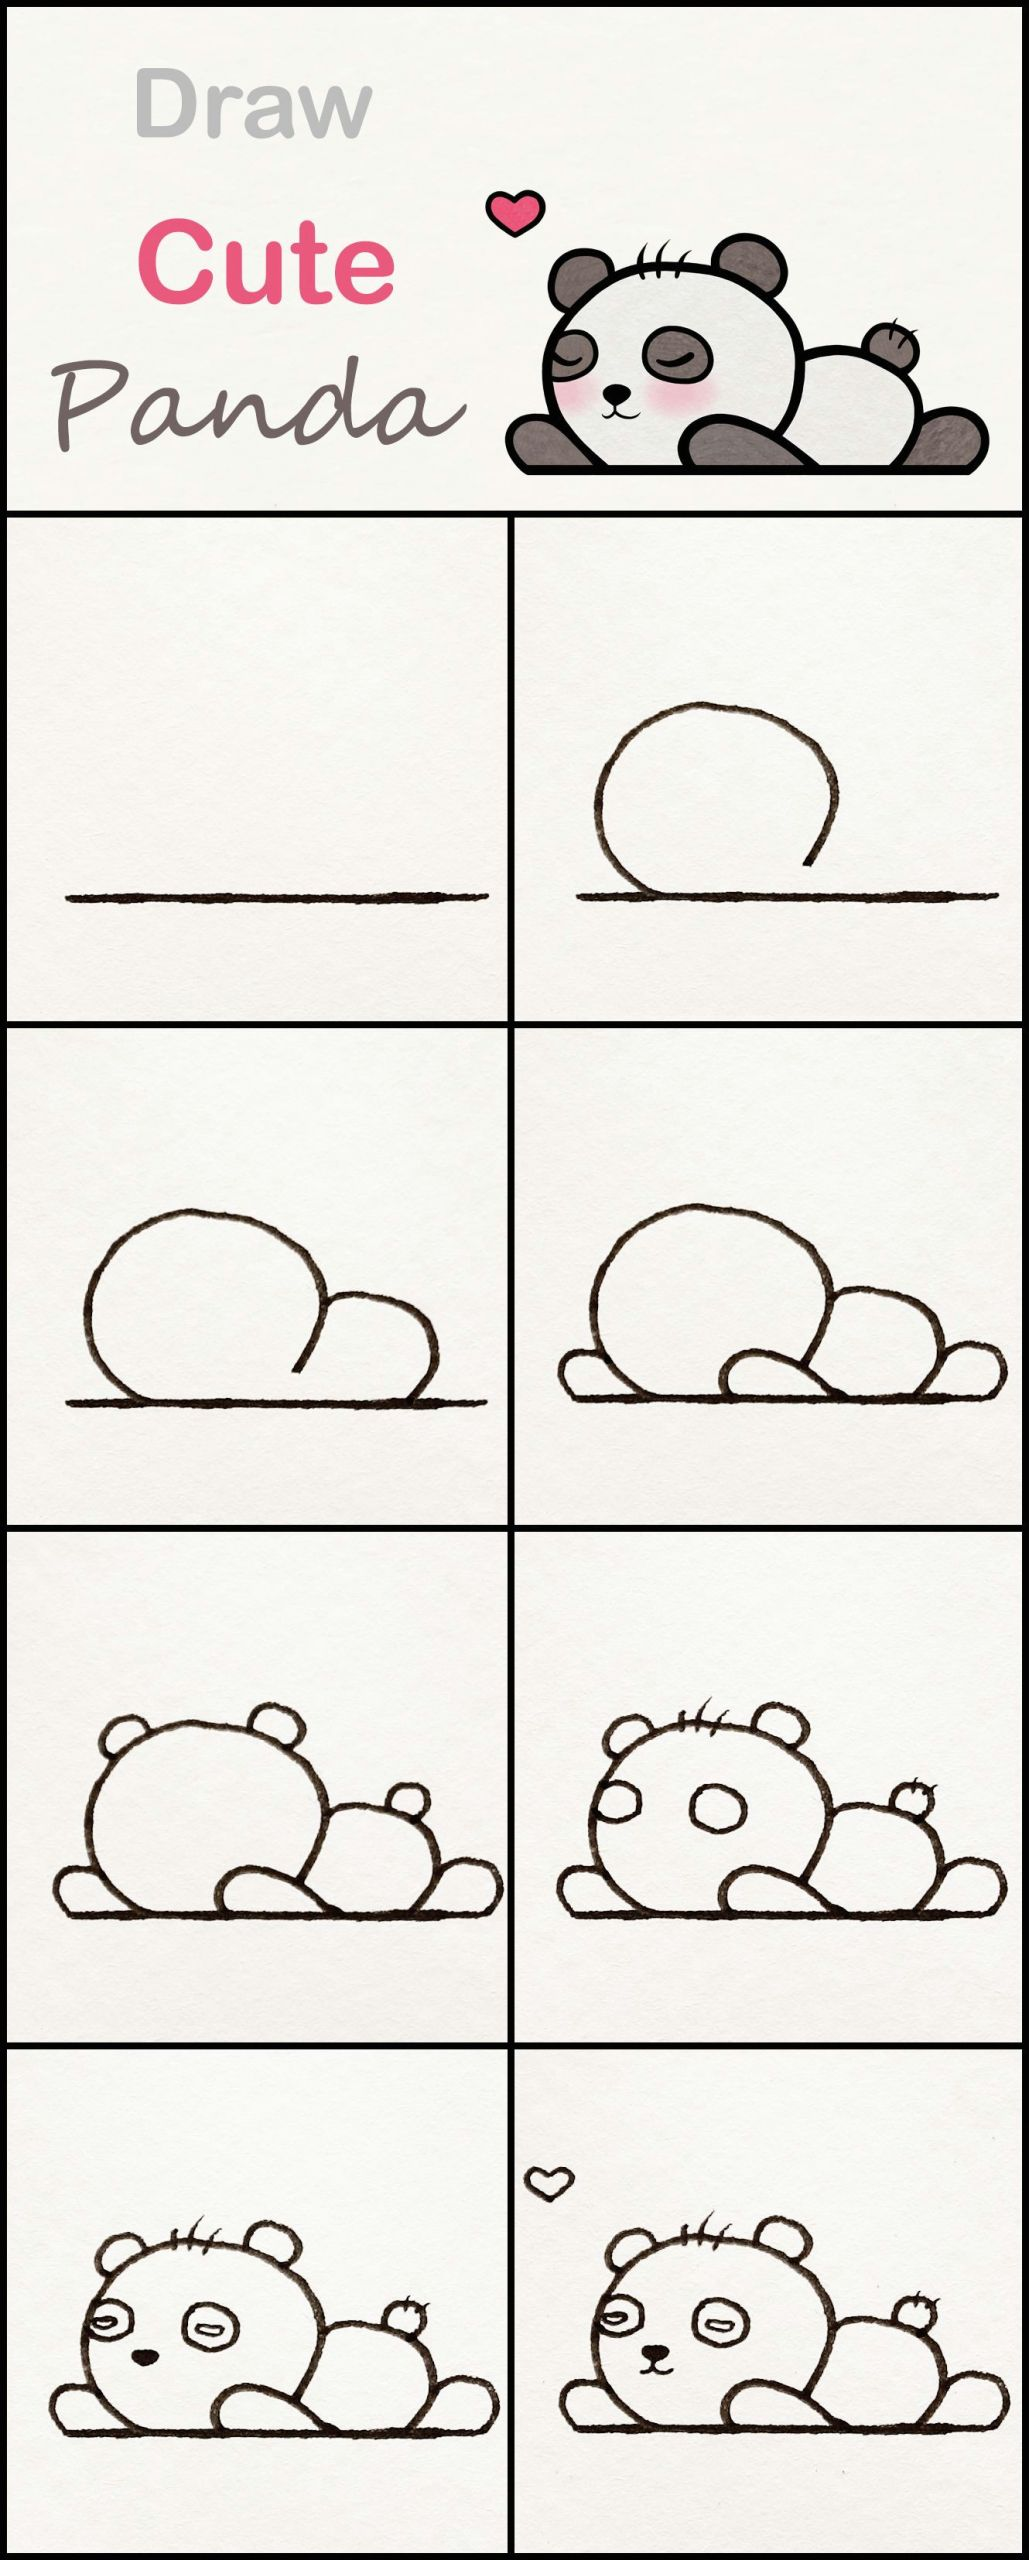 Easy How to Draw Cute Animals Learn How to Draw A Cute Baby Panda Step by Step A Very